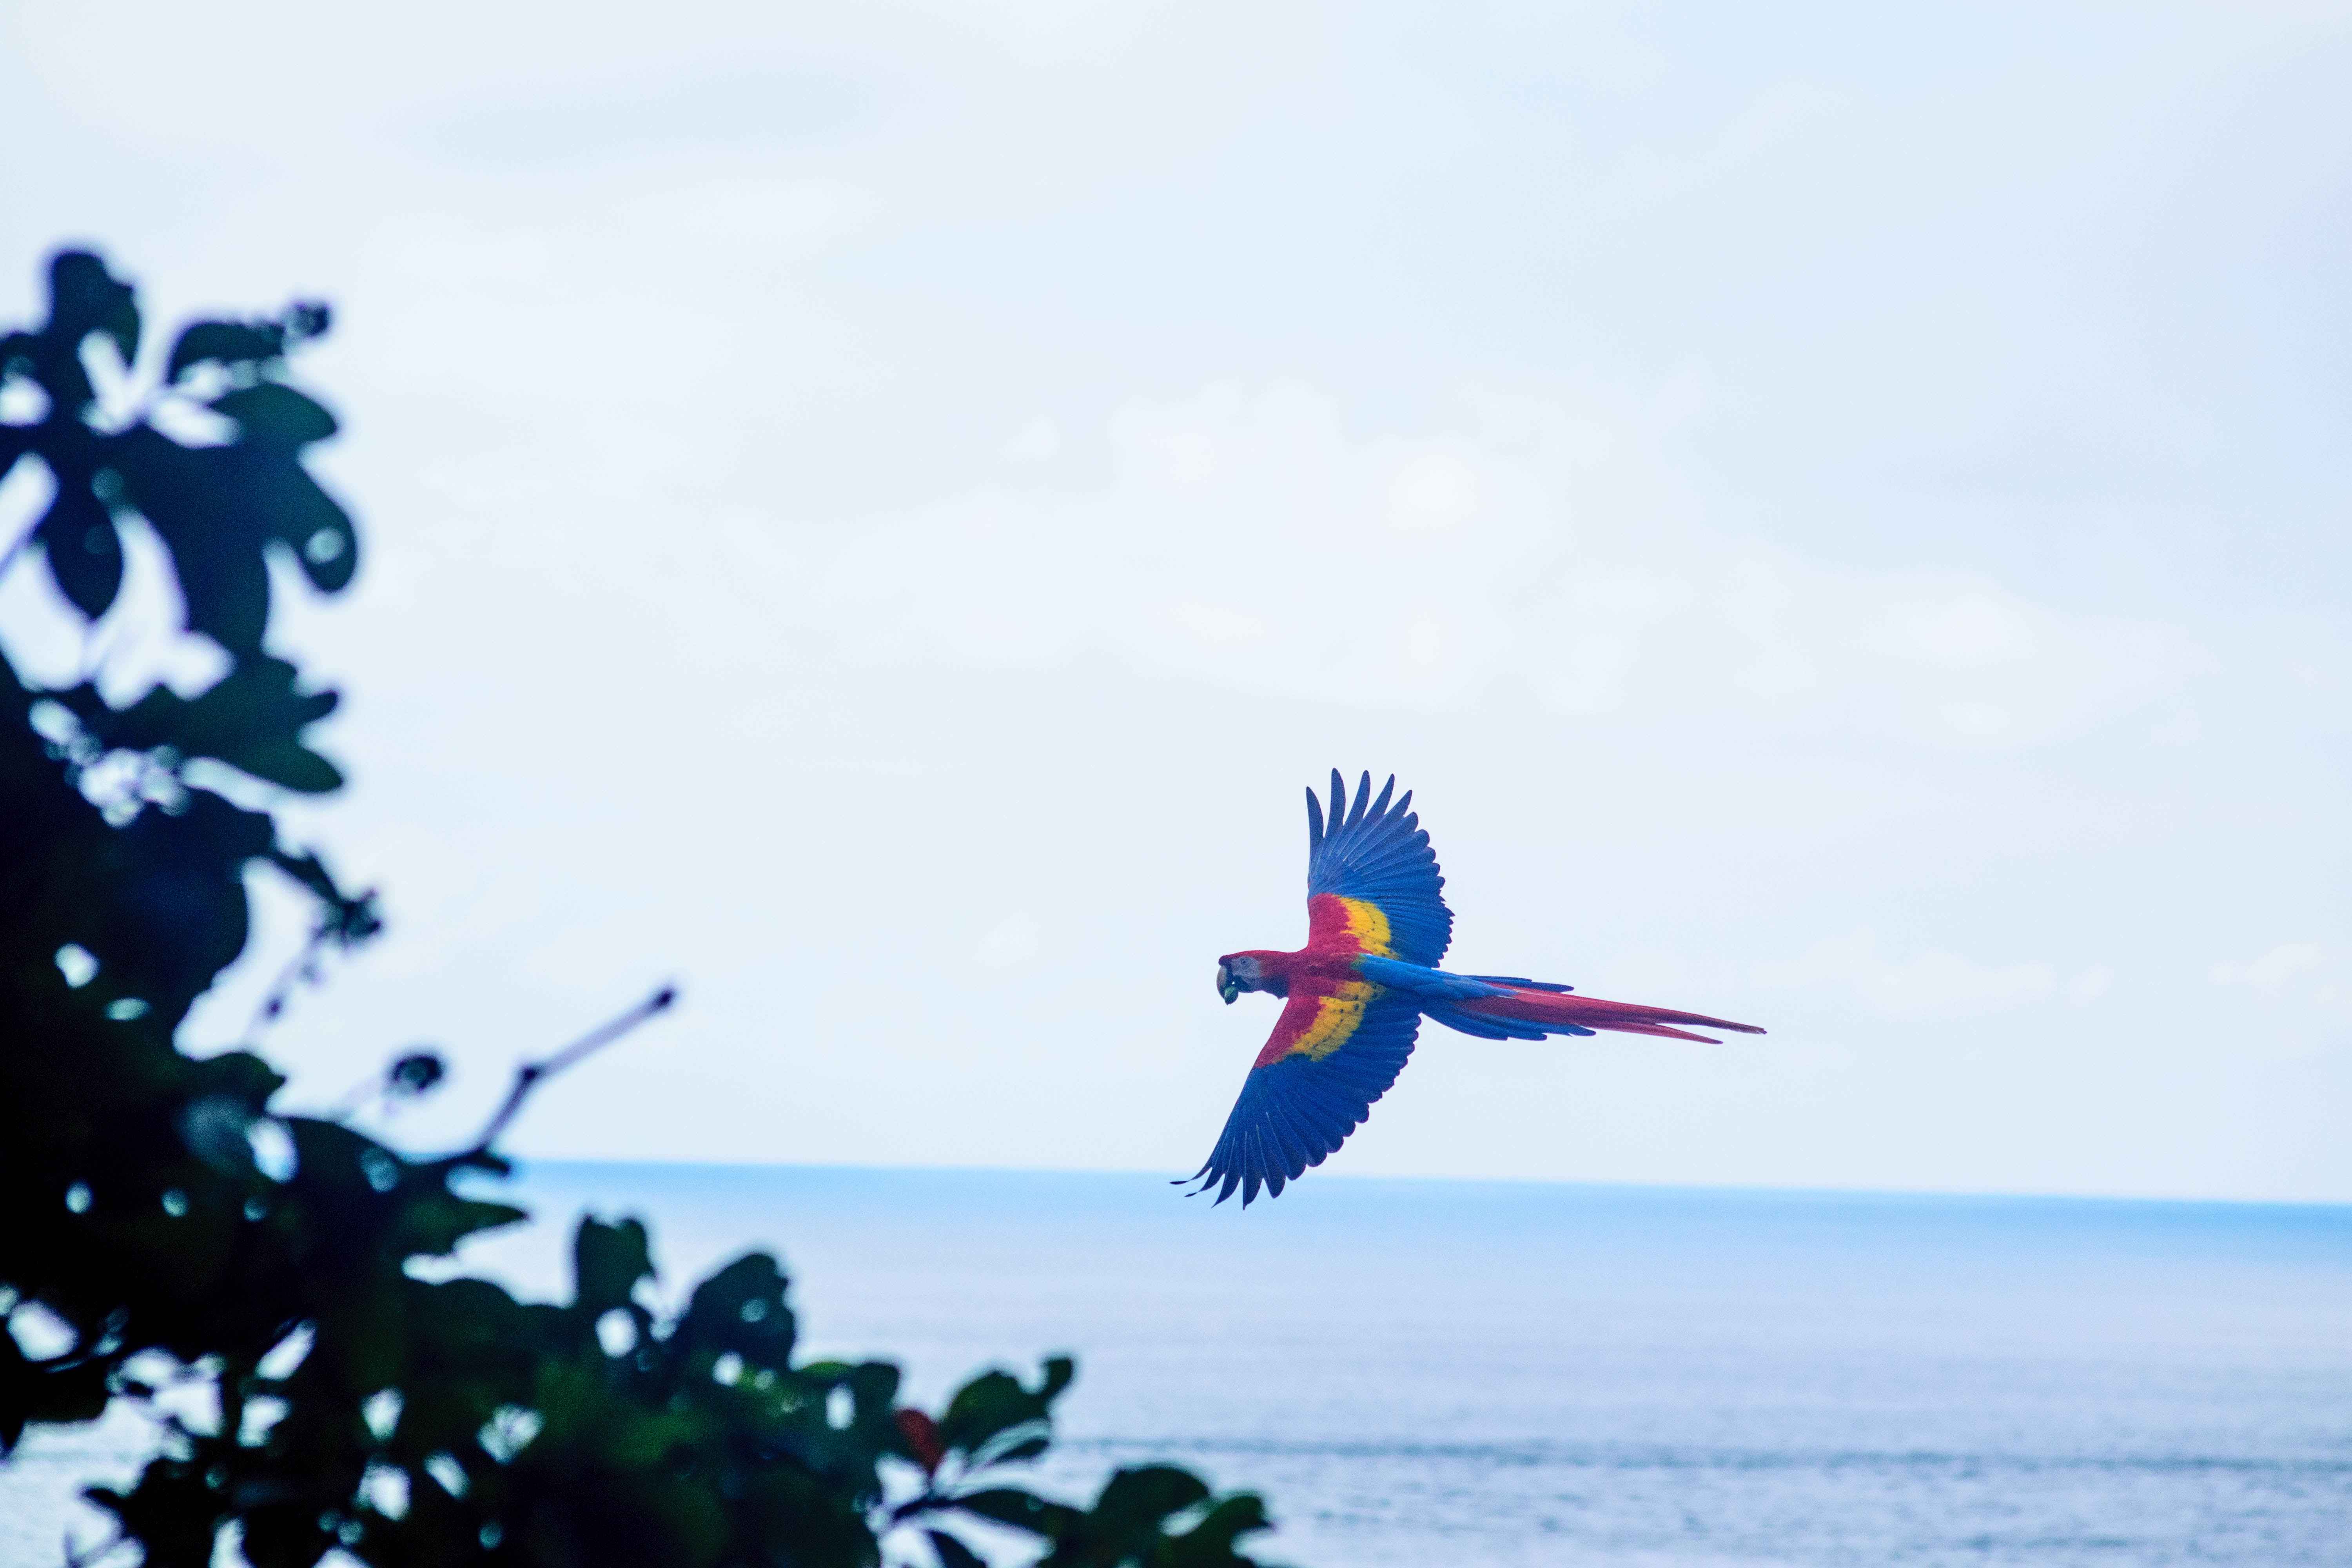 multicolored parrot bird flying near body of water